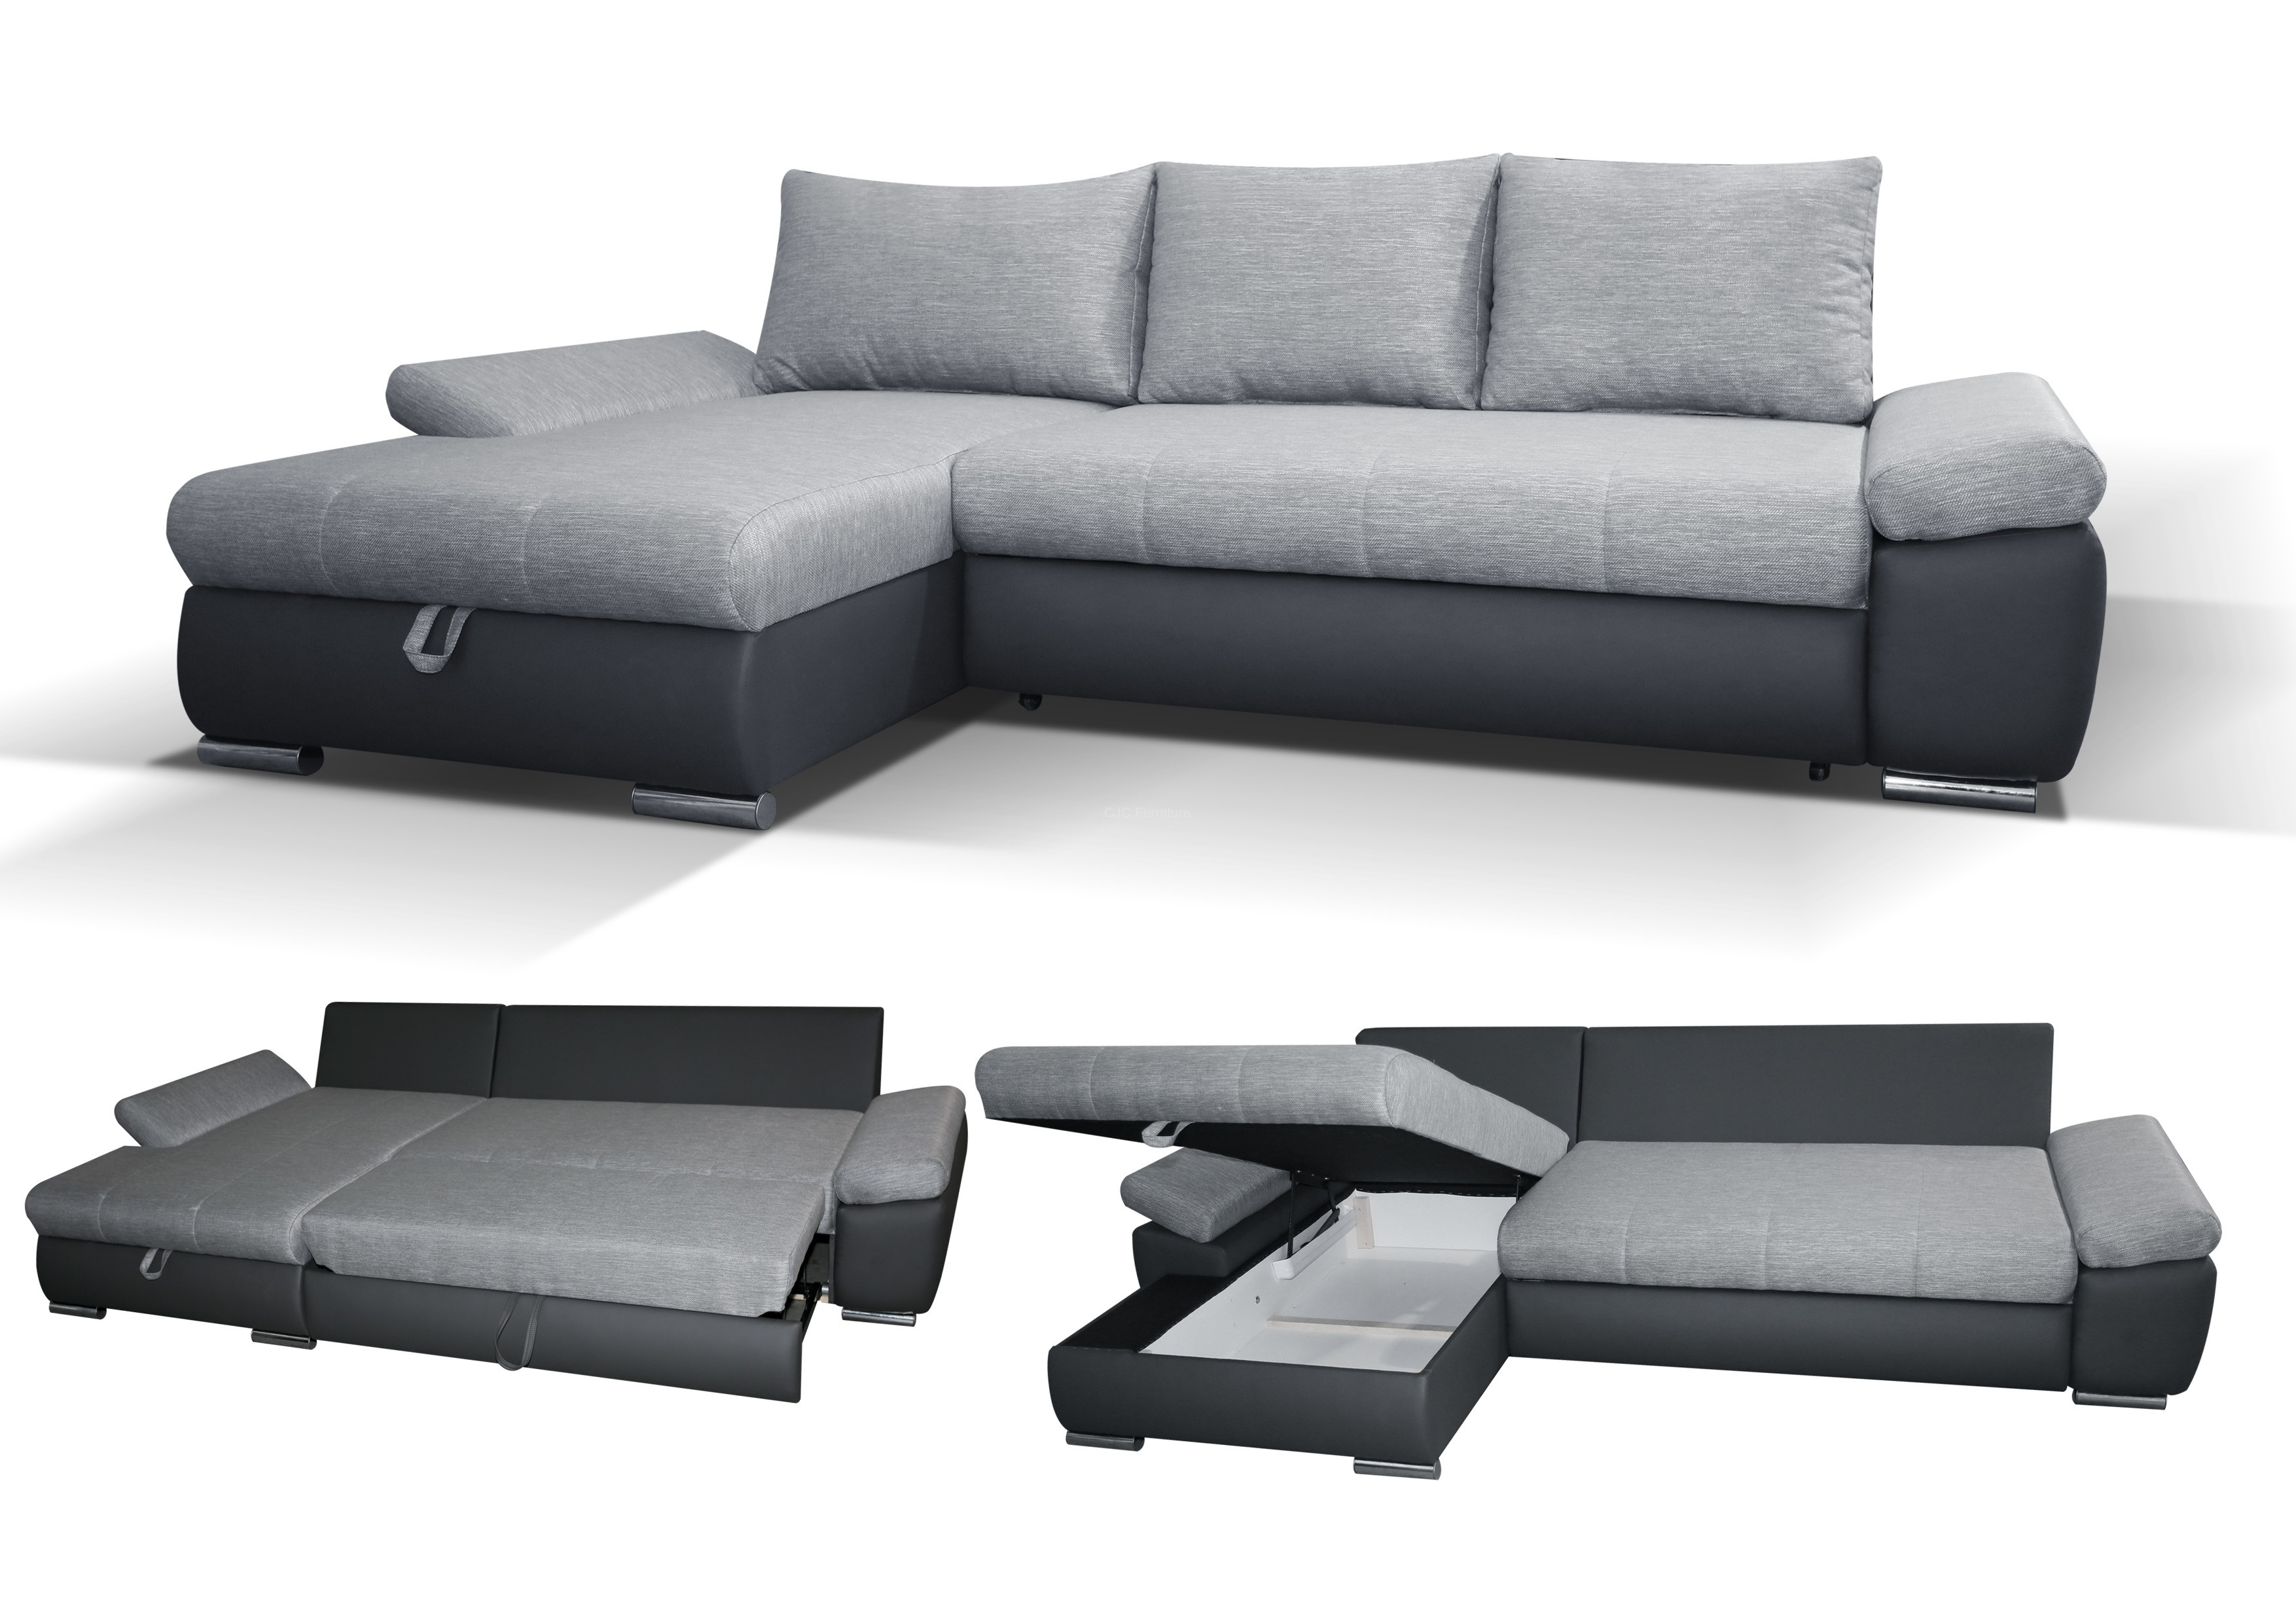 Creativity Corner Sofa Bed Ikea Friheten Sofabed With Storage Regarding Corner Couch Bed (Image 5 of 15)